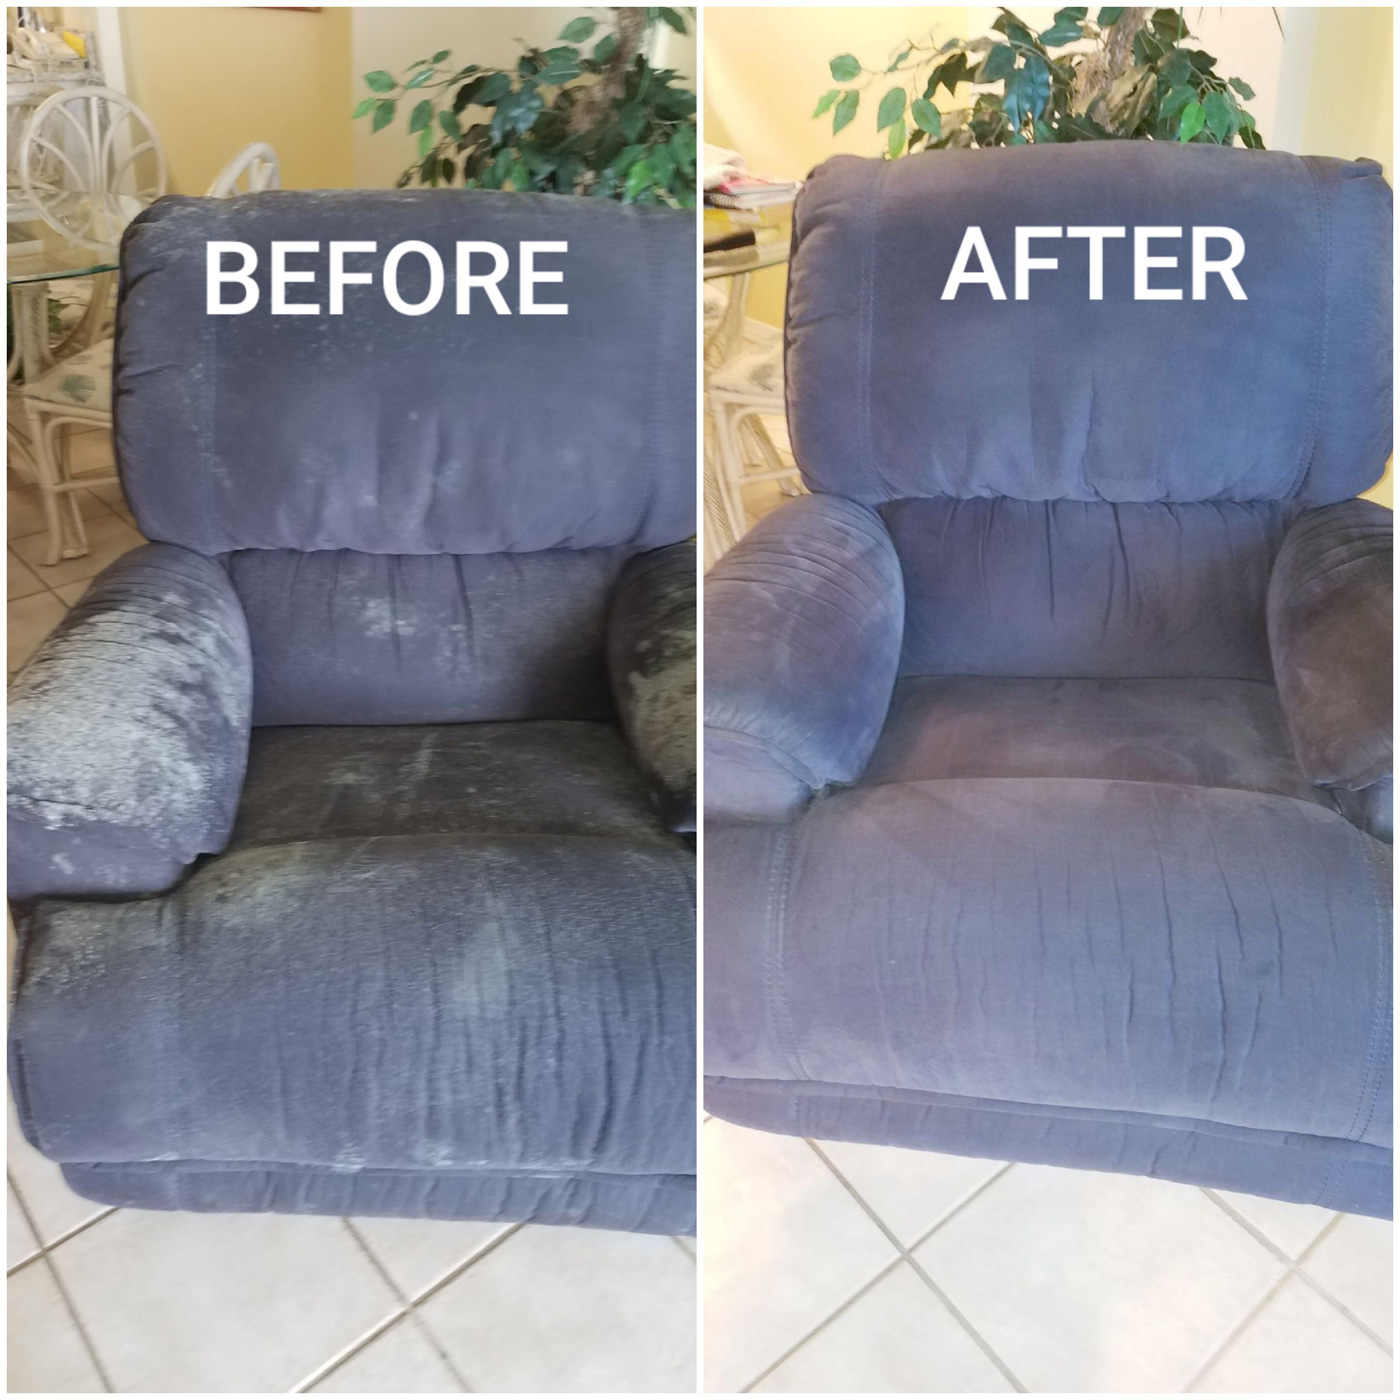 Mold Removal Before and After 4